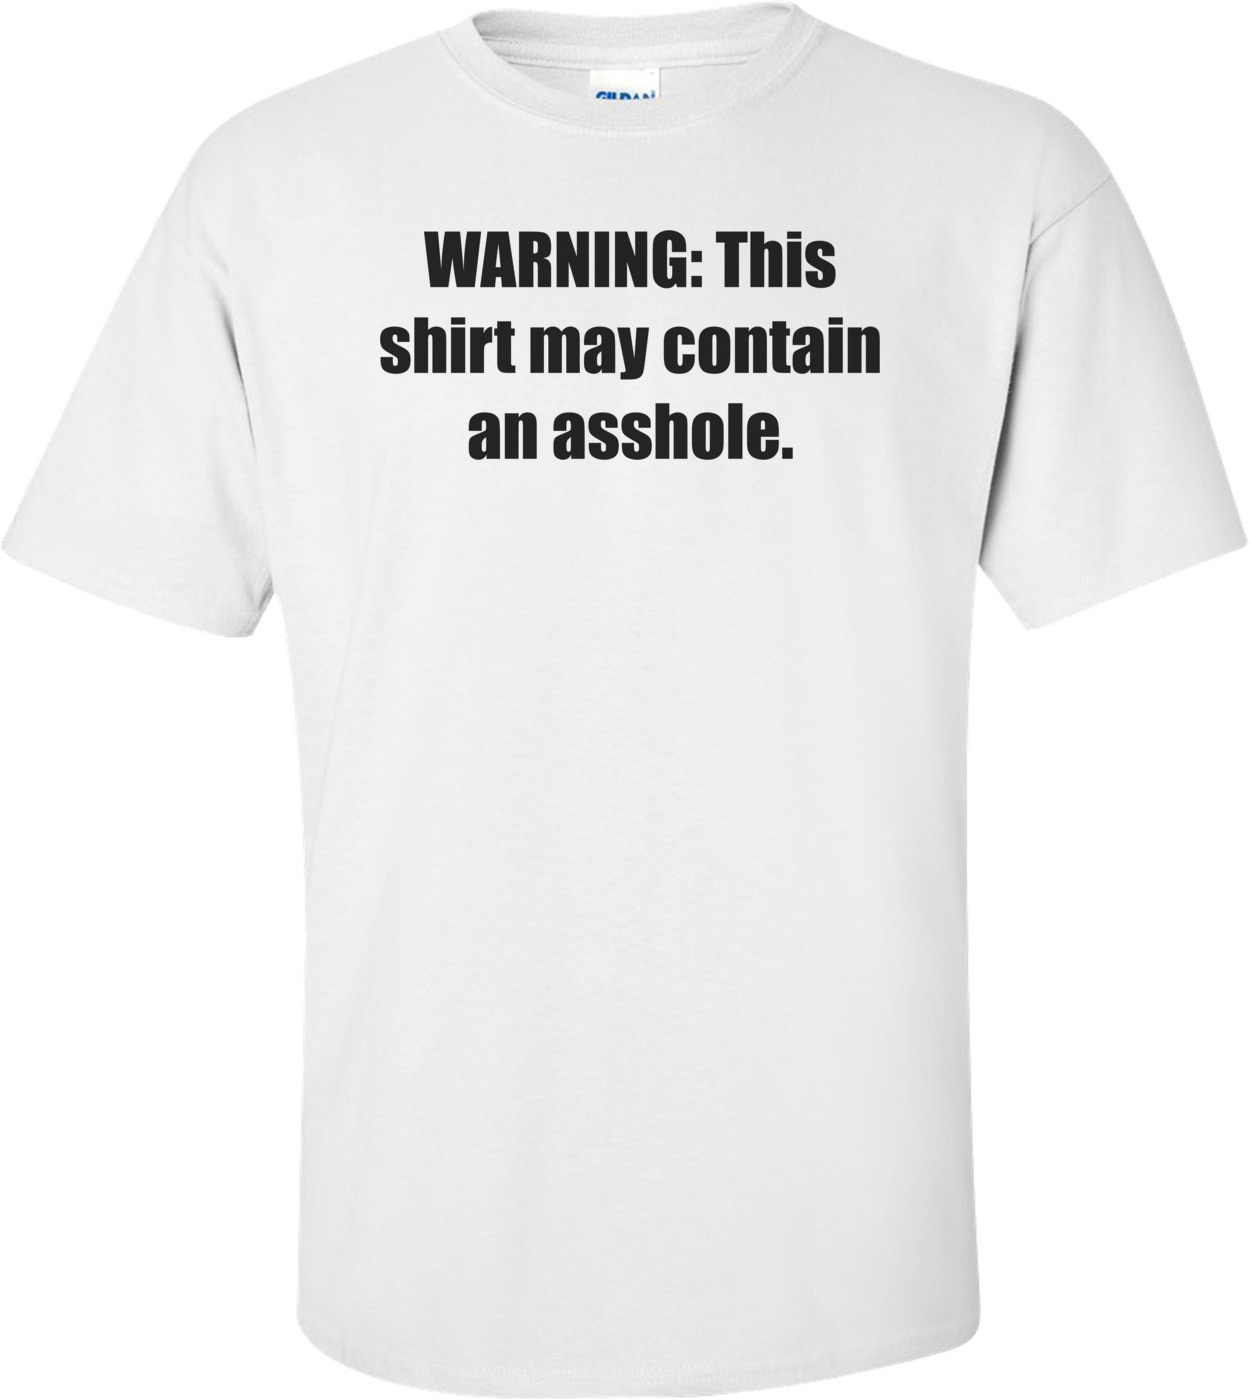 WARNING: This shirt may contain an asshole. Shirt